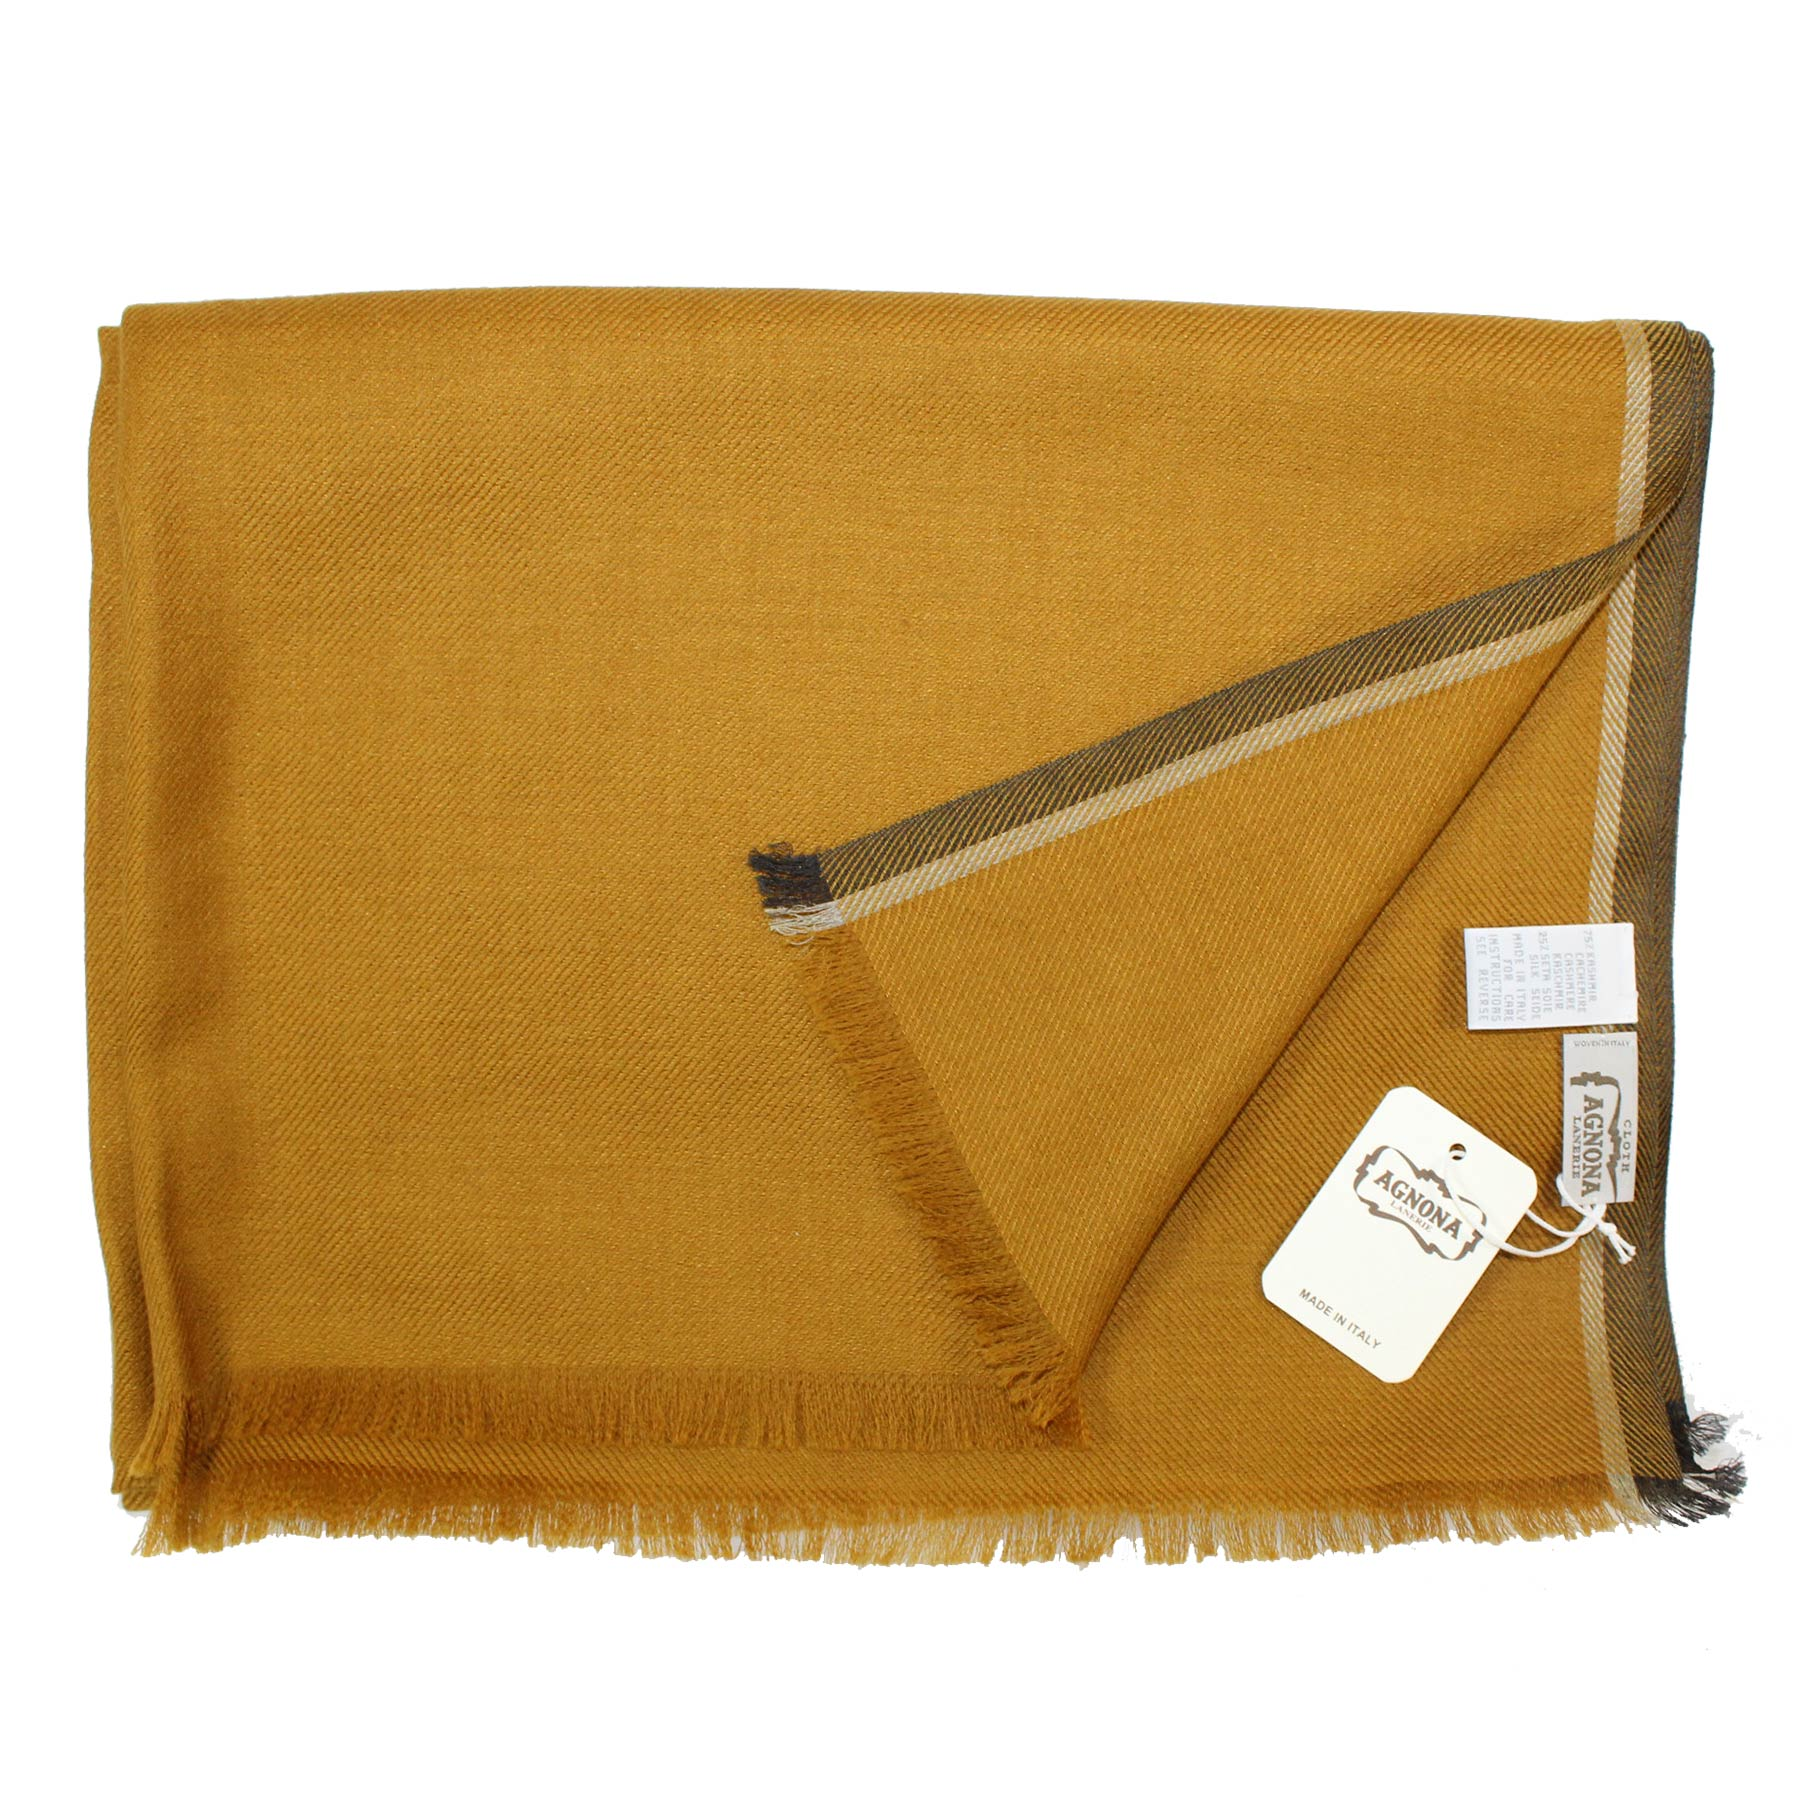 Agnona Scarf Mustard - Luxury Cashmere Silk Shawl FINAL SALE